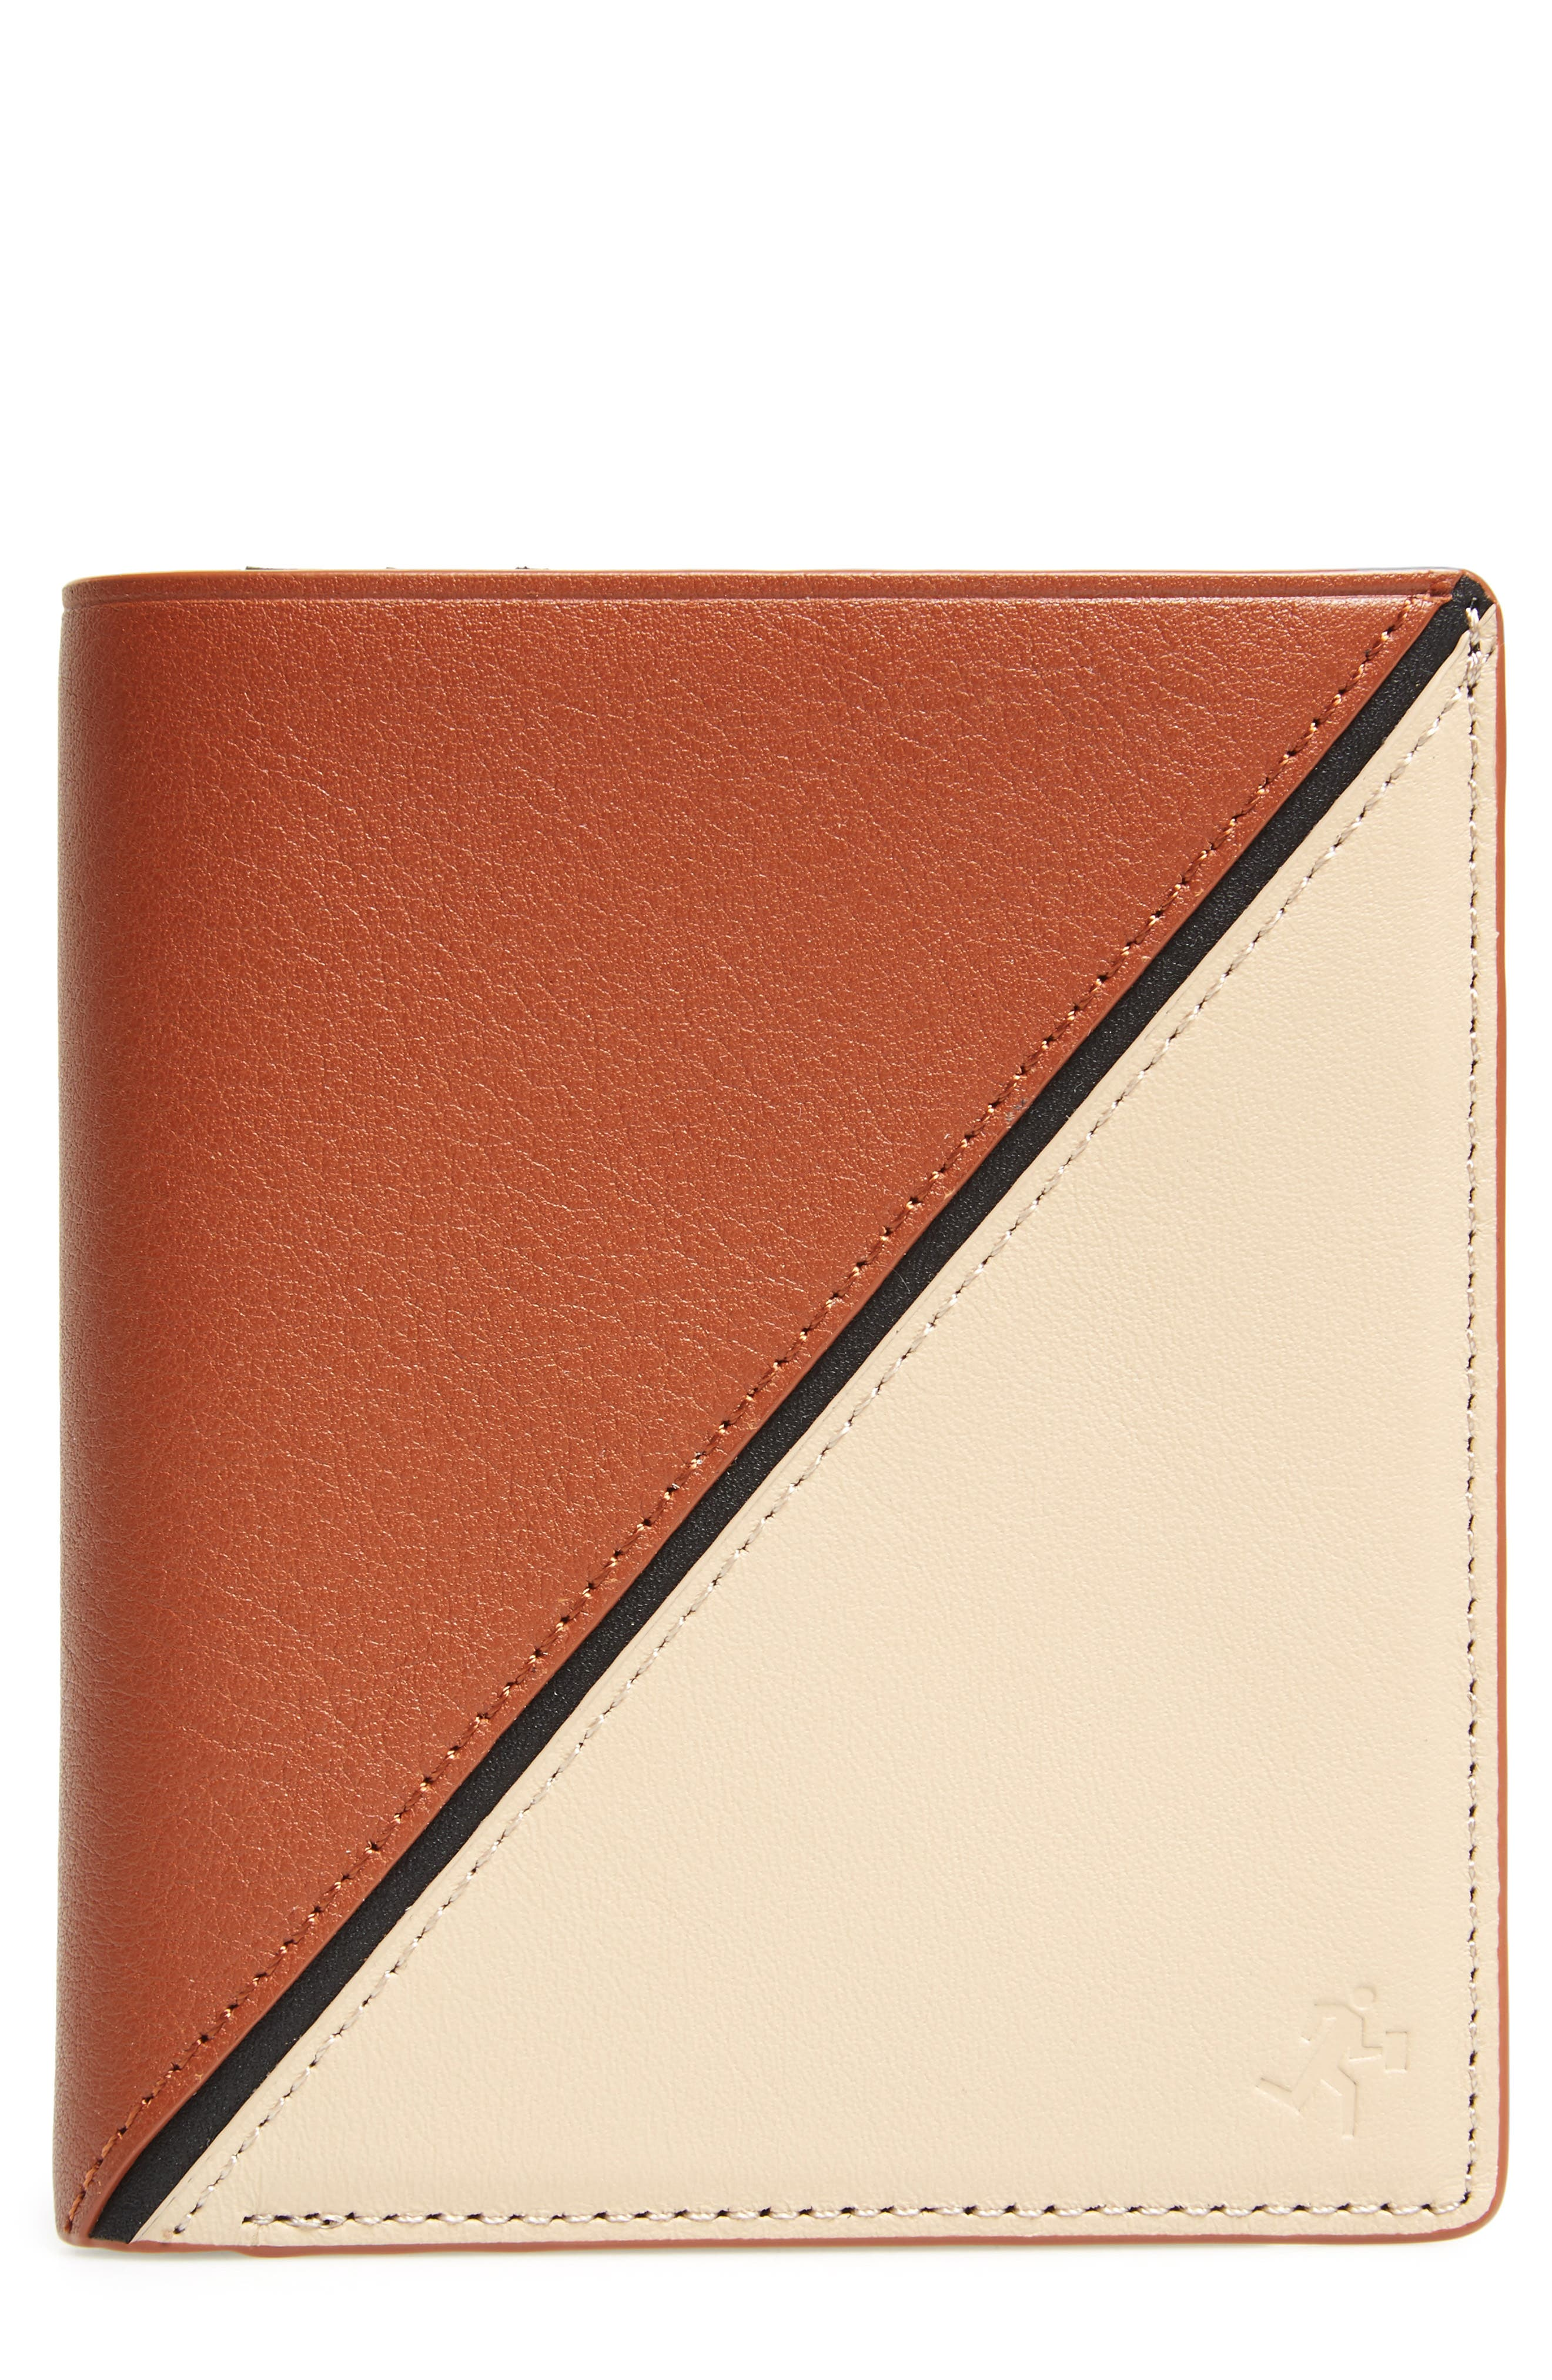 Alternate Image 1 Selected - WANT LES ESSENTIELS Bradley Bifold Leather Wallet